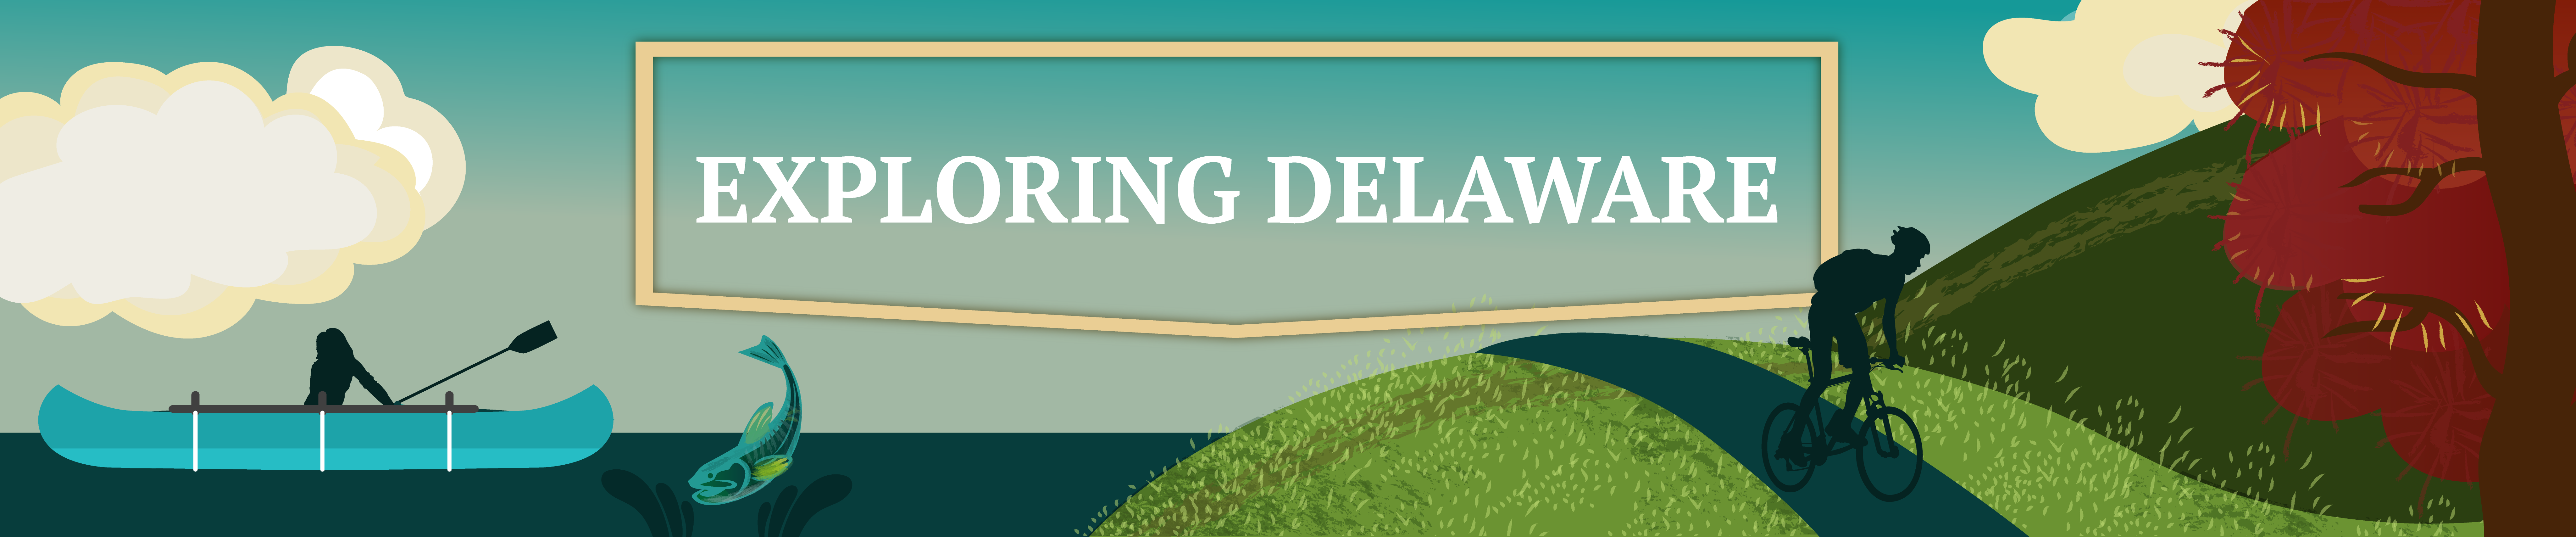 A graphic of a people explporing all the things fun to do in Delaware